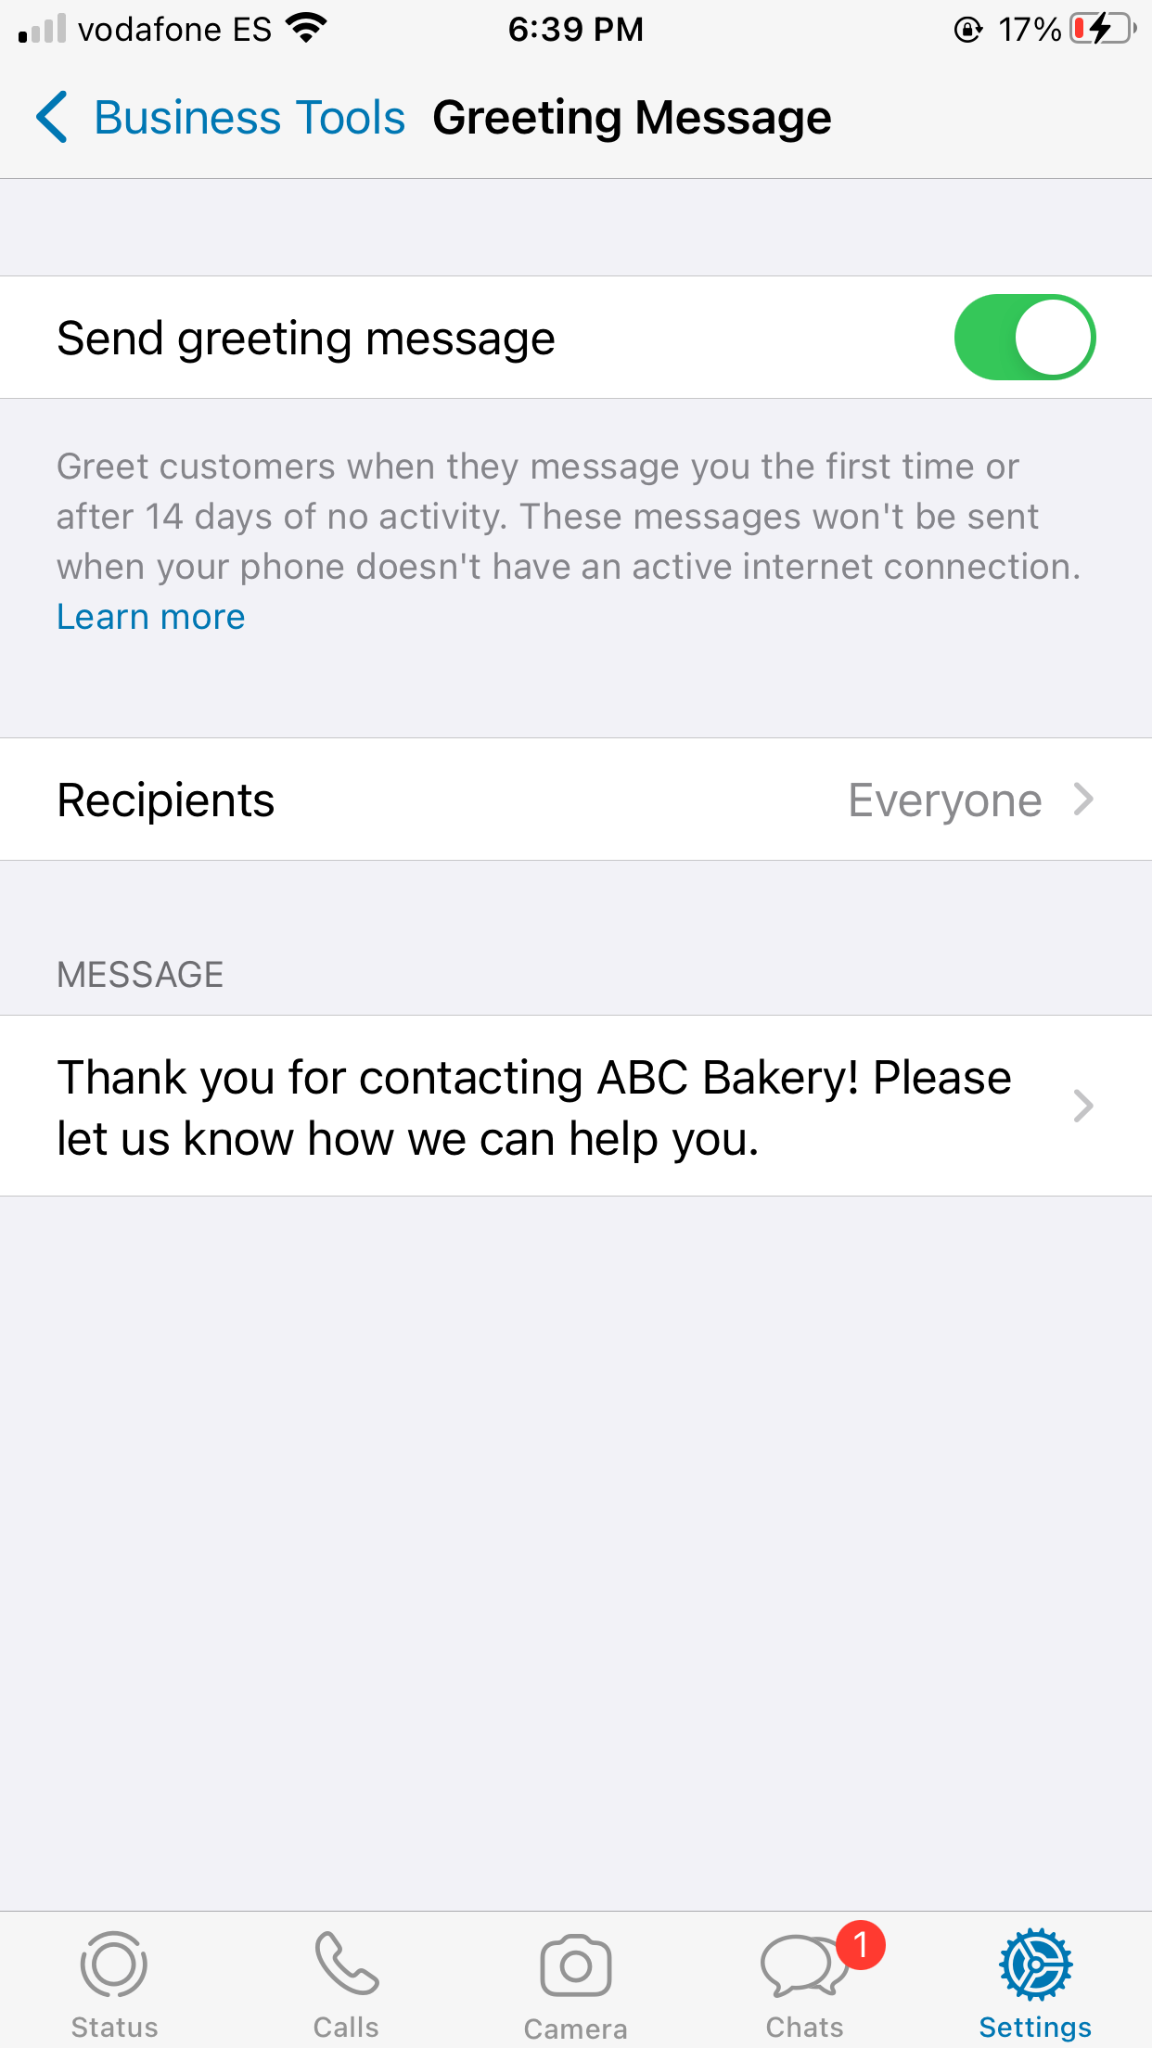 whatsapp business account greeting message